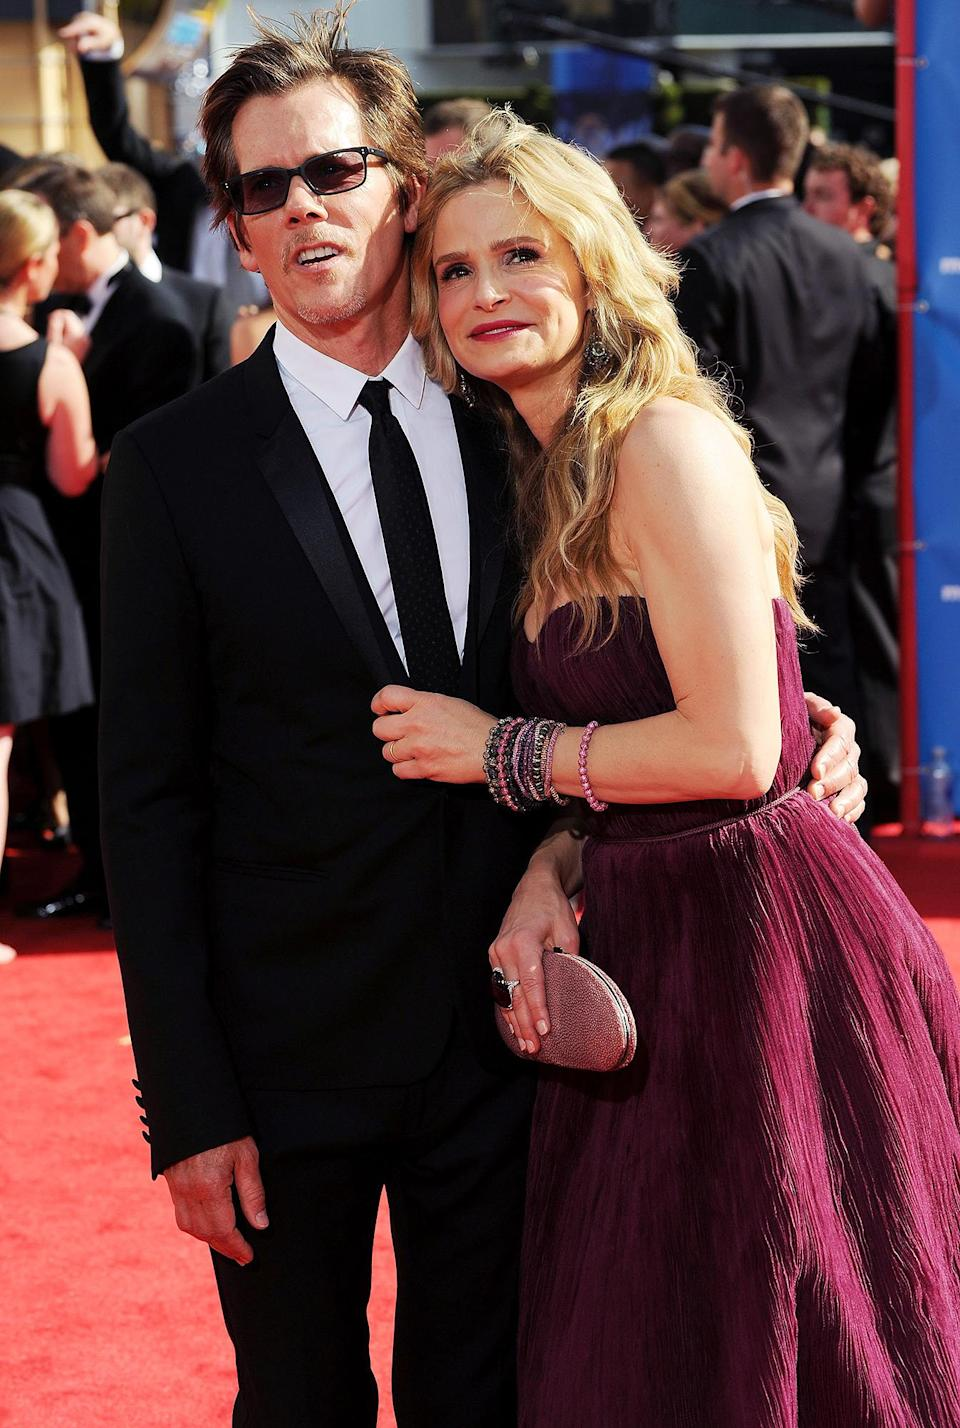 <p>Kevin Bacon and Kyra Sedgwick cuddled up on the carpet ahead of Sedgwick taking home the Emmy for lead actress in a drama series for her work on <em>The Closer</em>. </p>